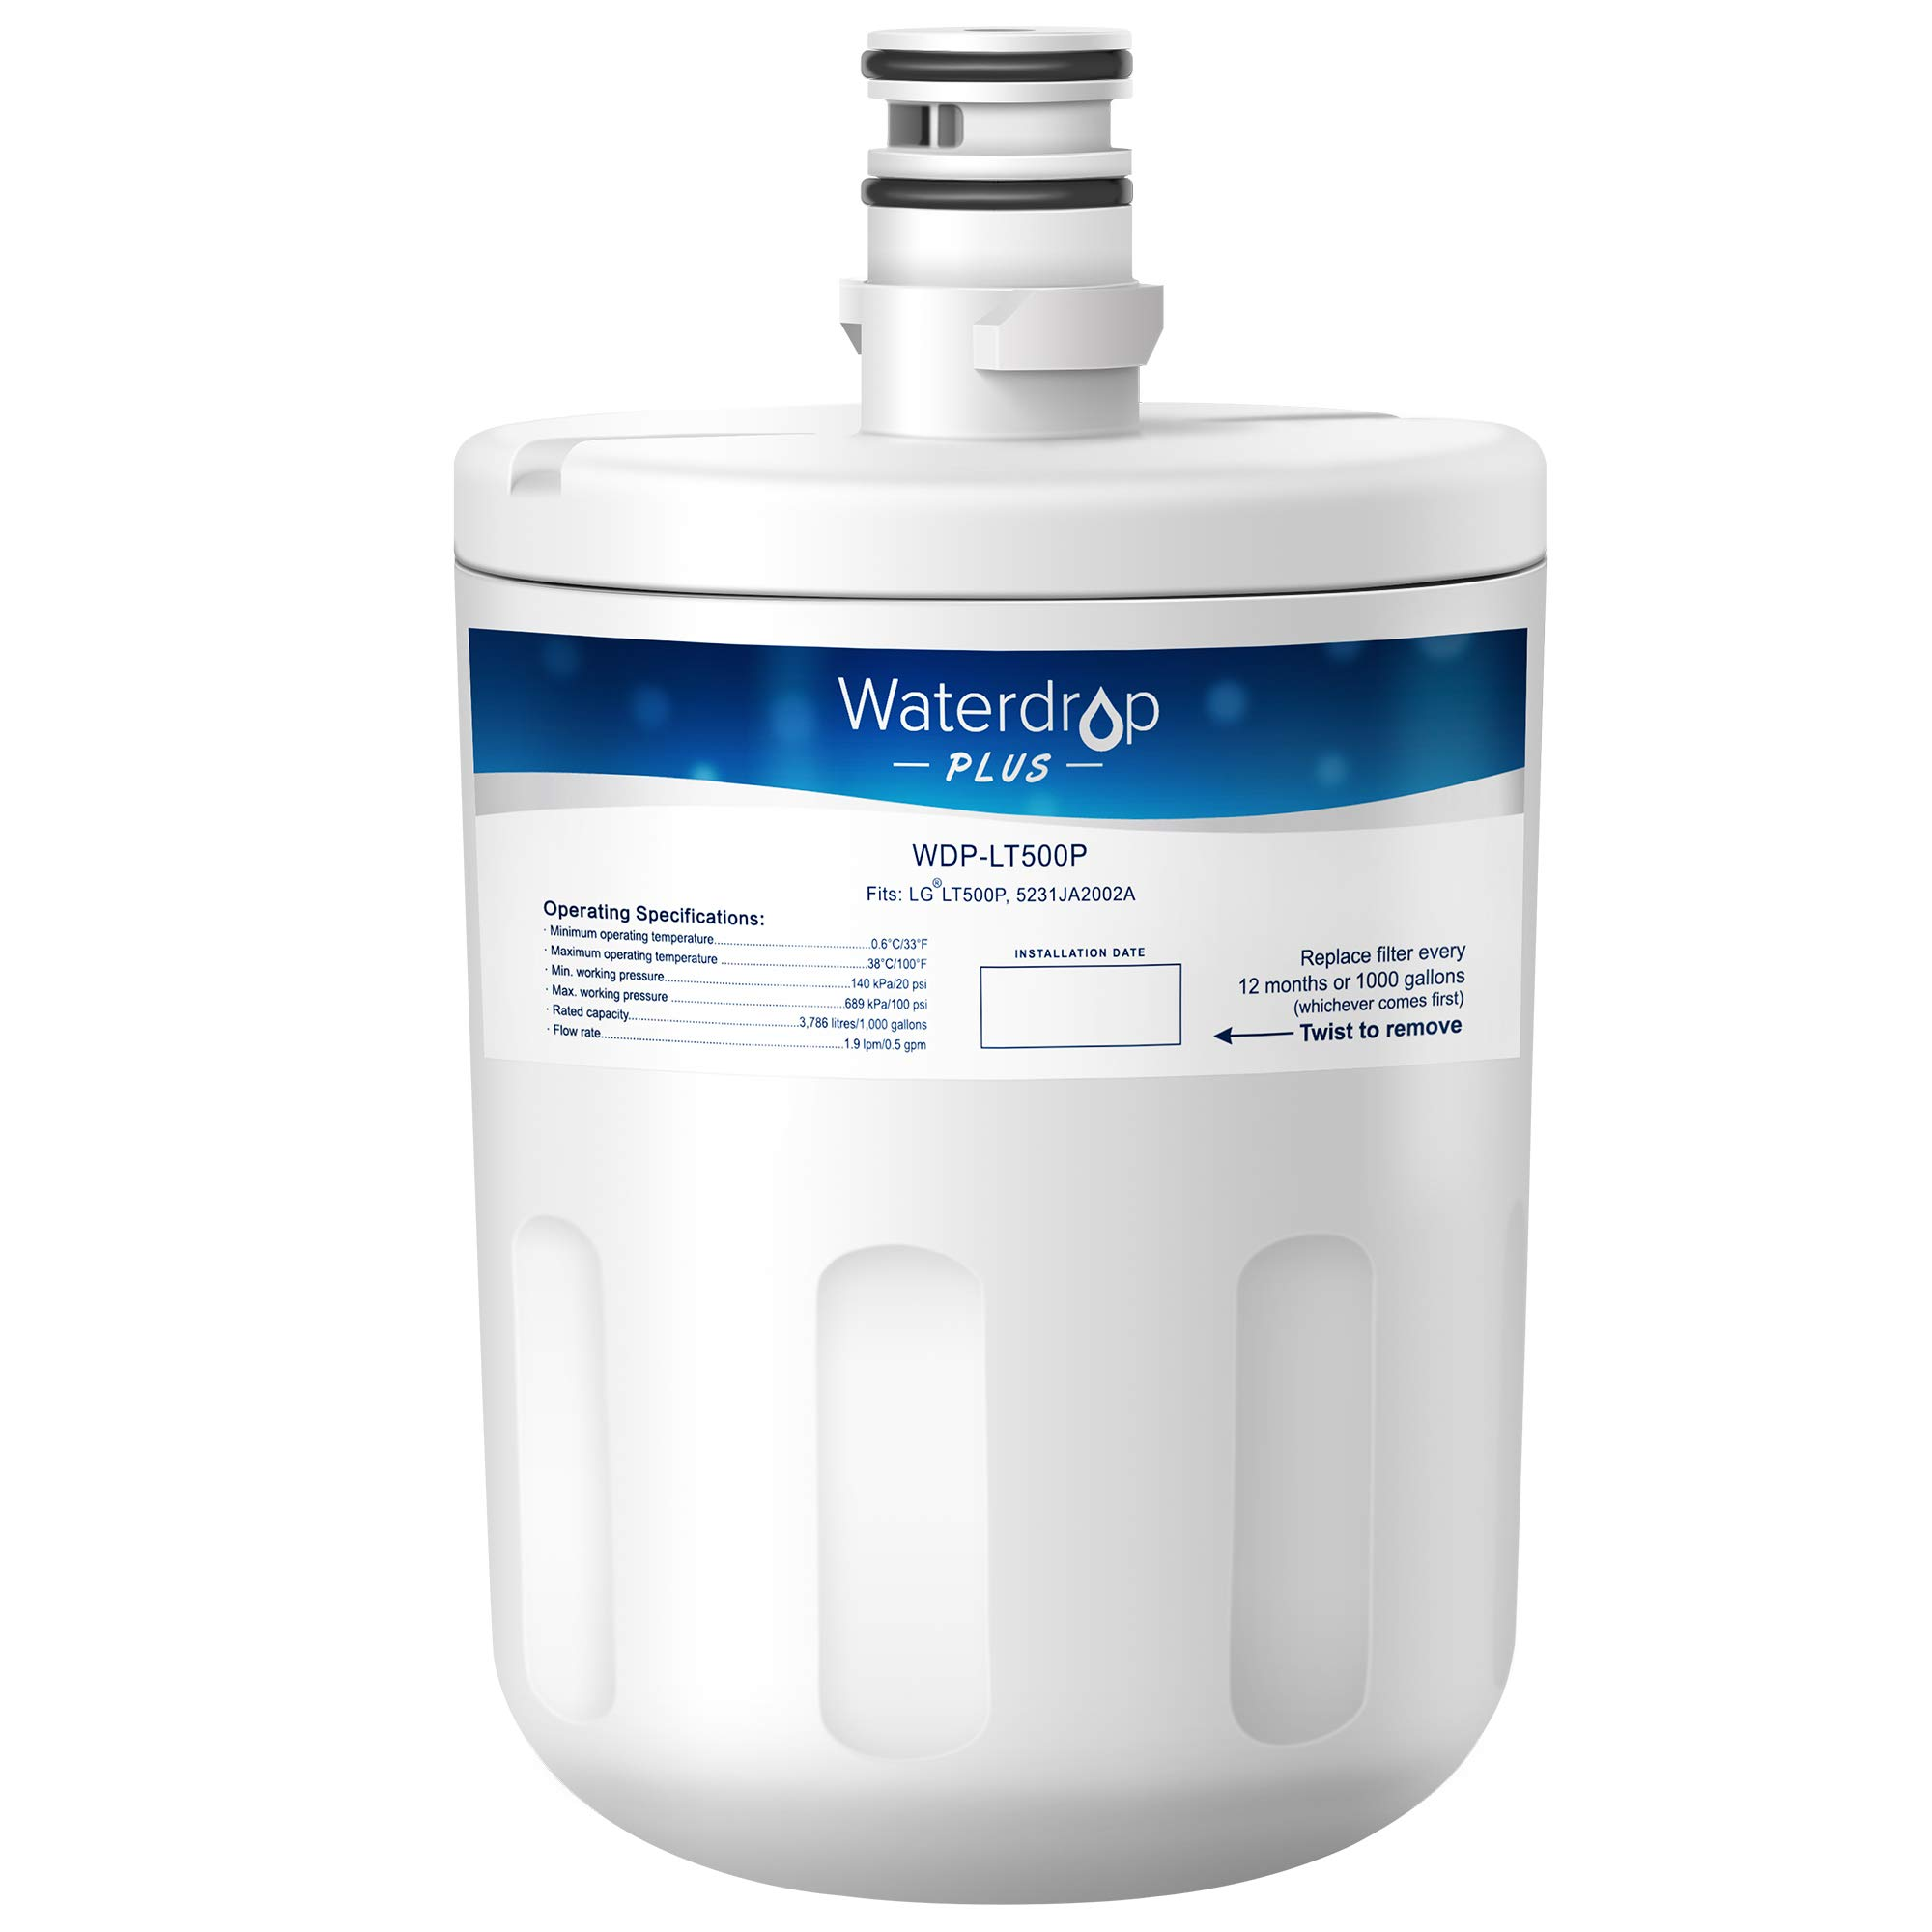 Waterdrop Plus LT500P Double Lifetime Refrigerator Water Filter Replacement for LG LT500P, 5231JA2002A, ADQ72910901, ADQ72910907, Kenmore GEN11042FR-08, 9890, 469890, 46-9890